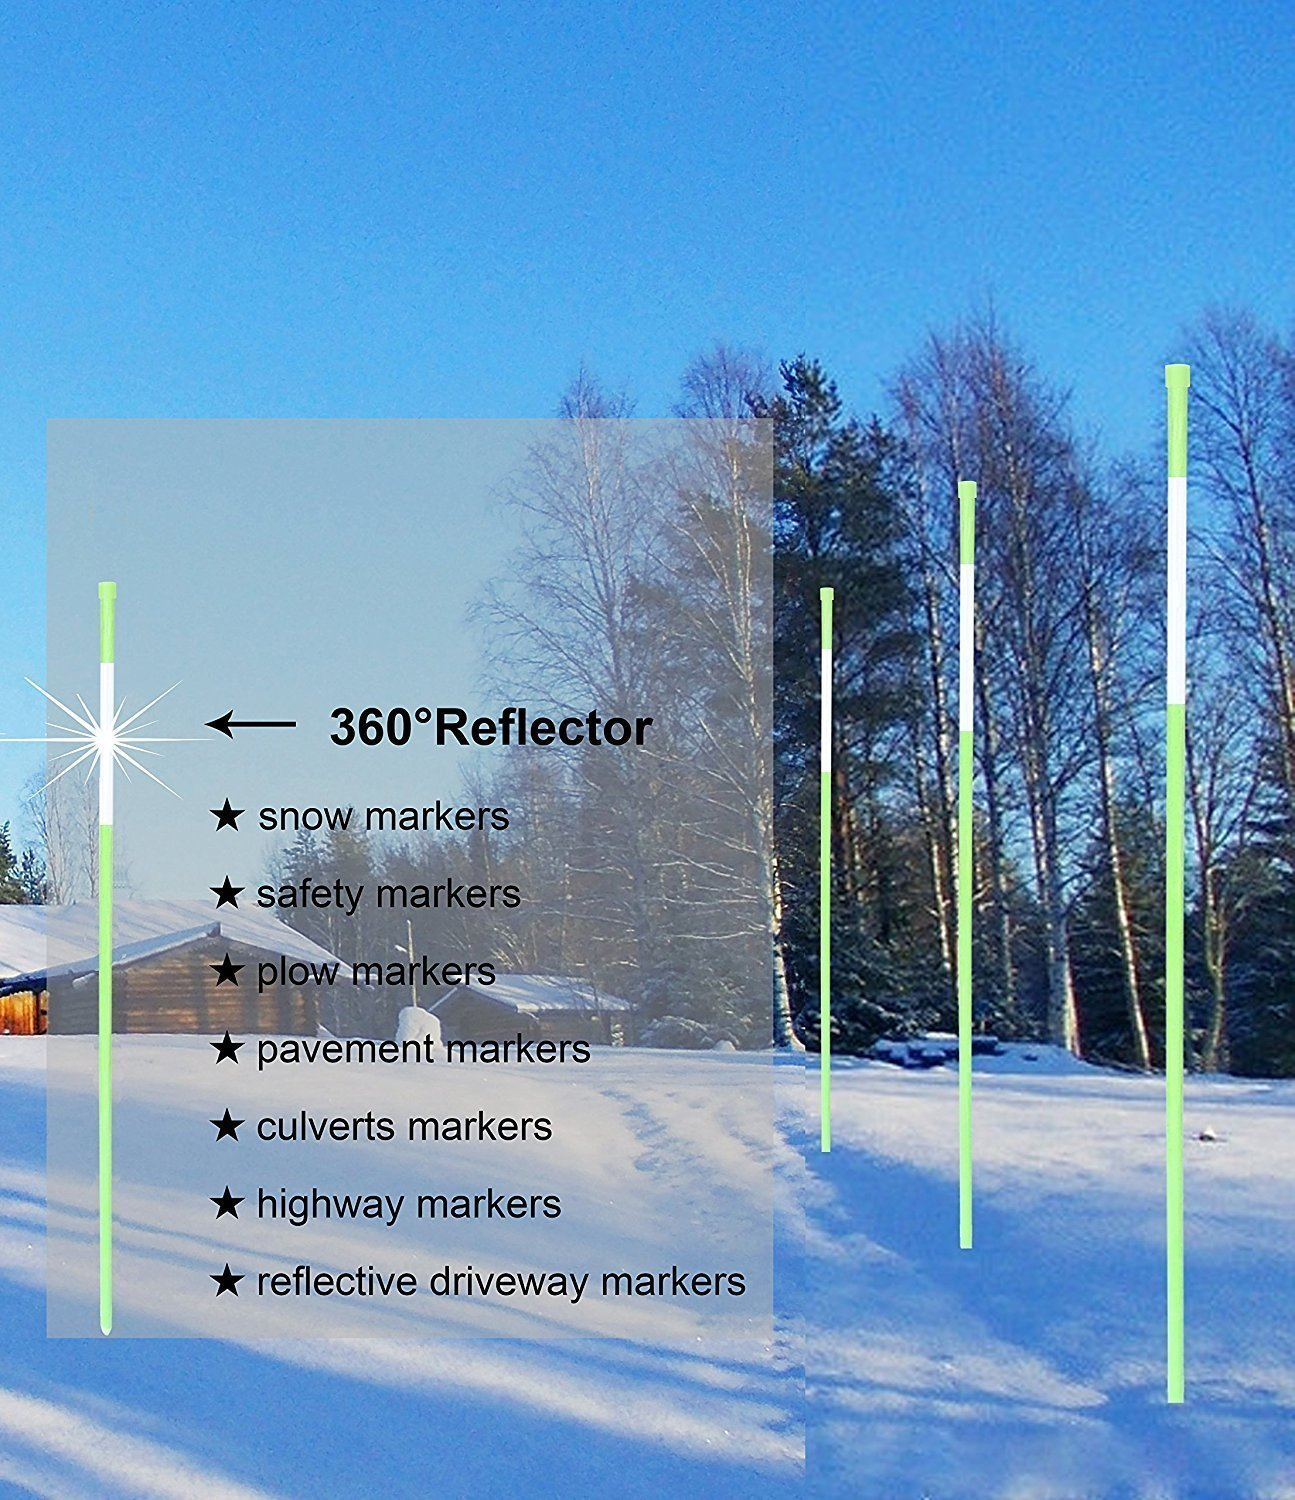 Fibermarker 60Inch Reflective Driveway Markers 5/16Inch Green Solid Driveway Poles for Easy Visibility at Night (100) by FiberMarker (Image #5)